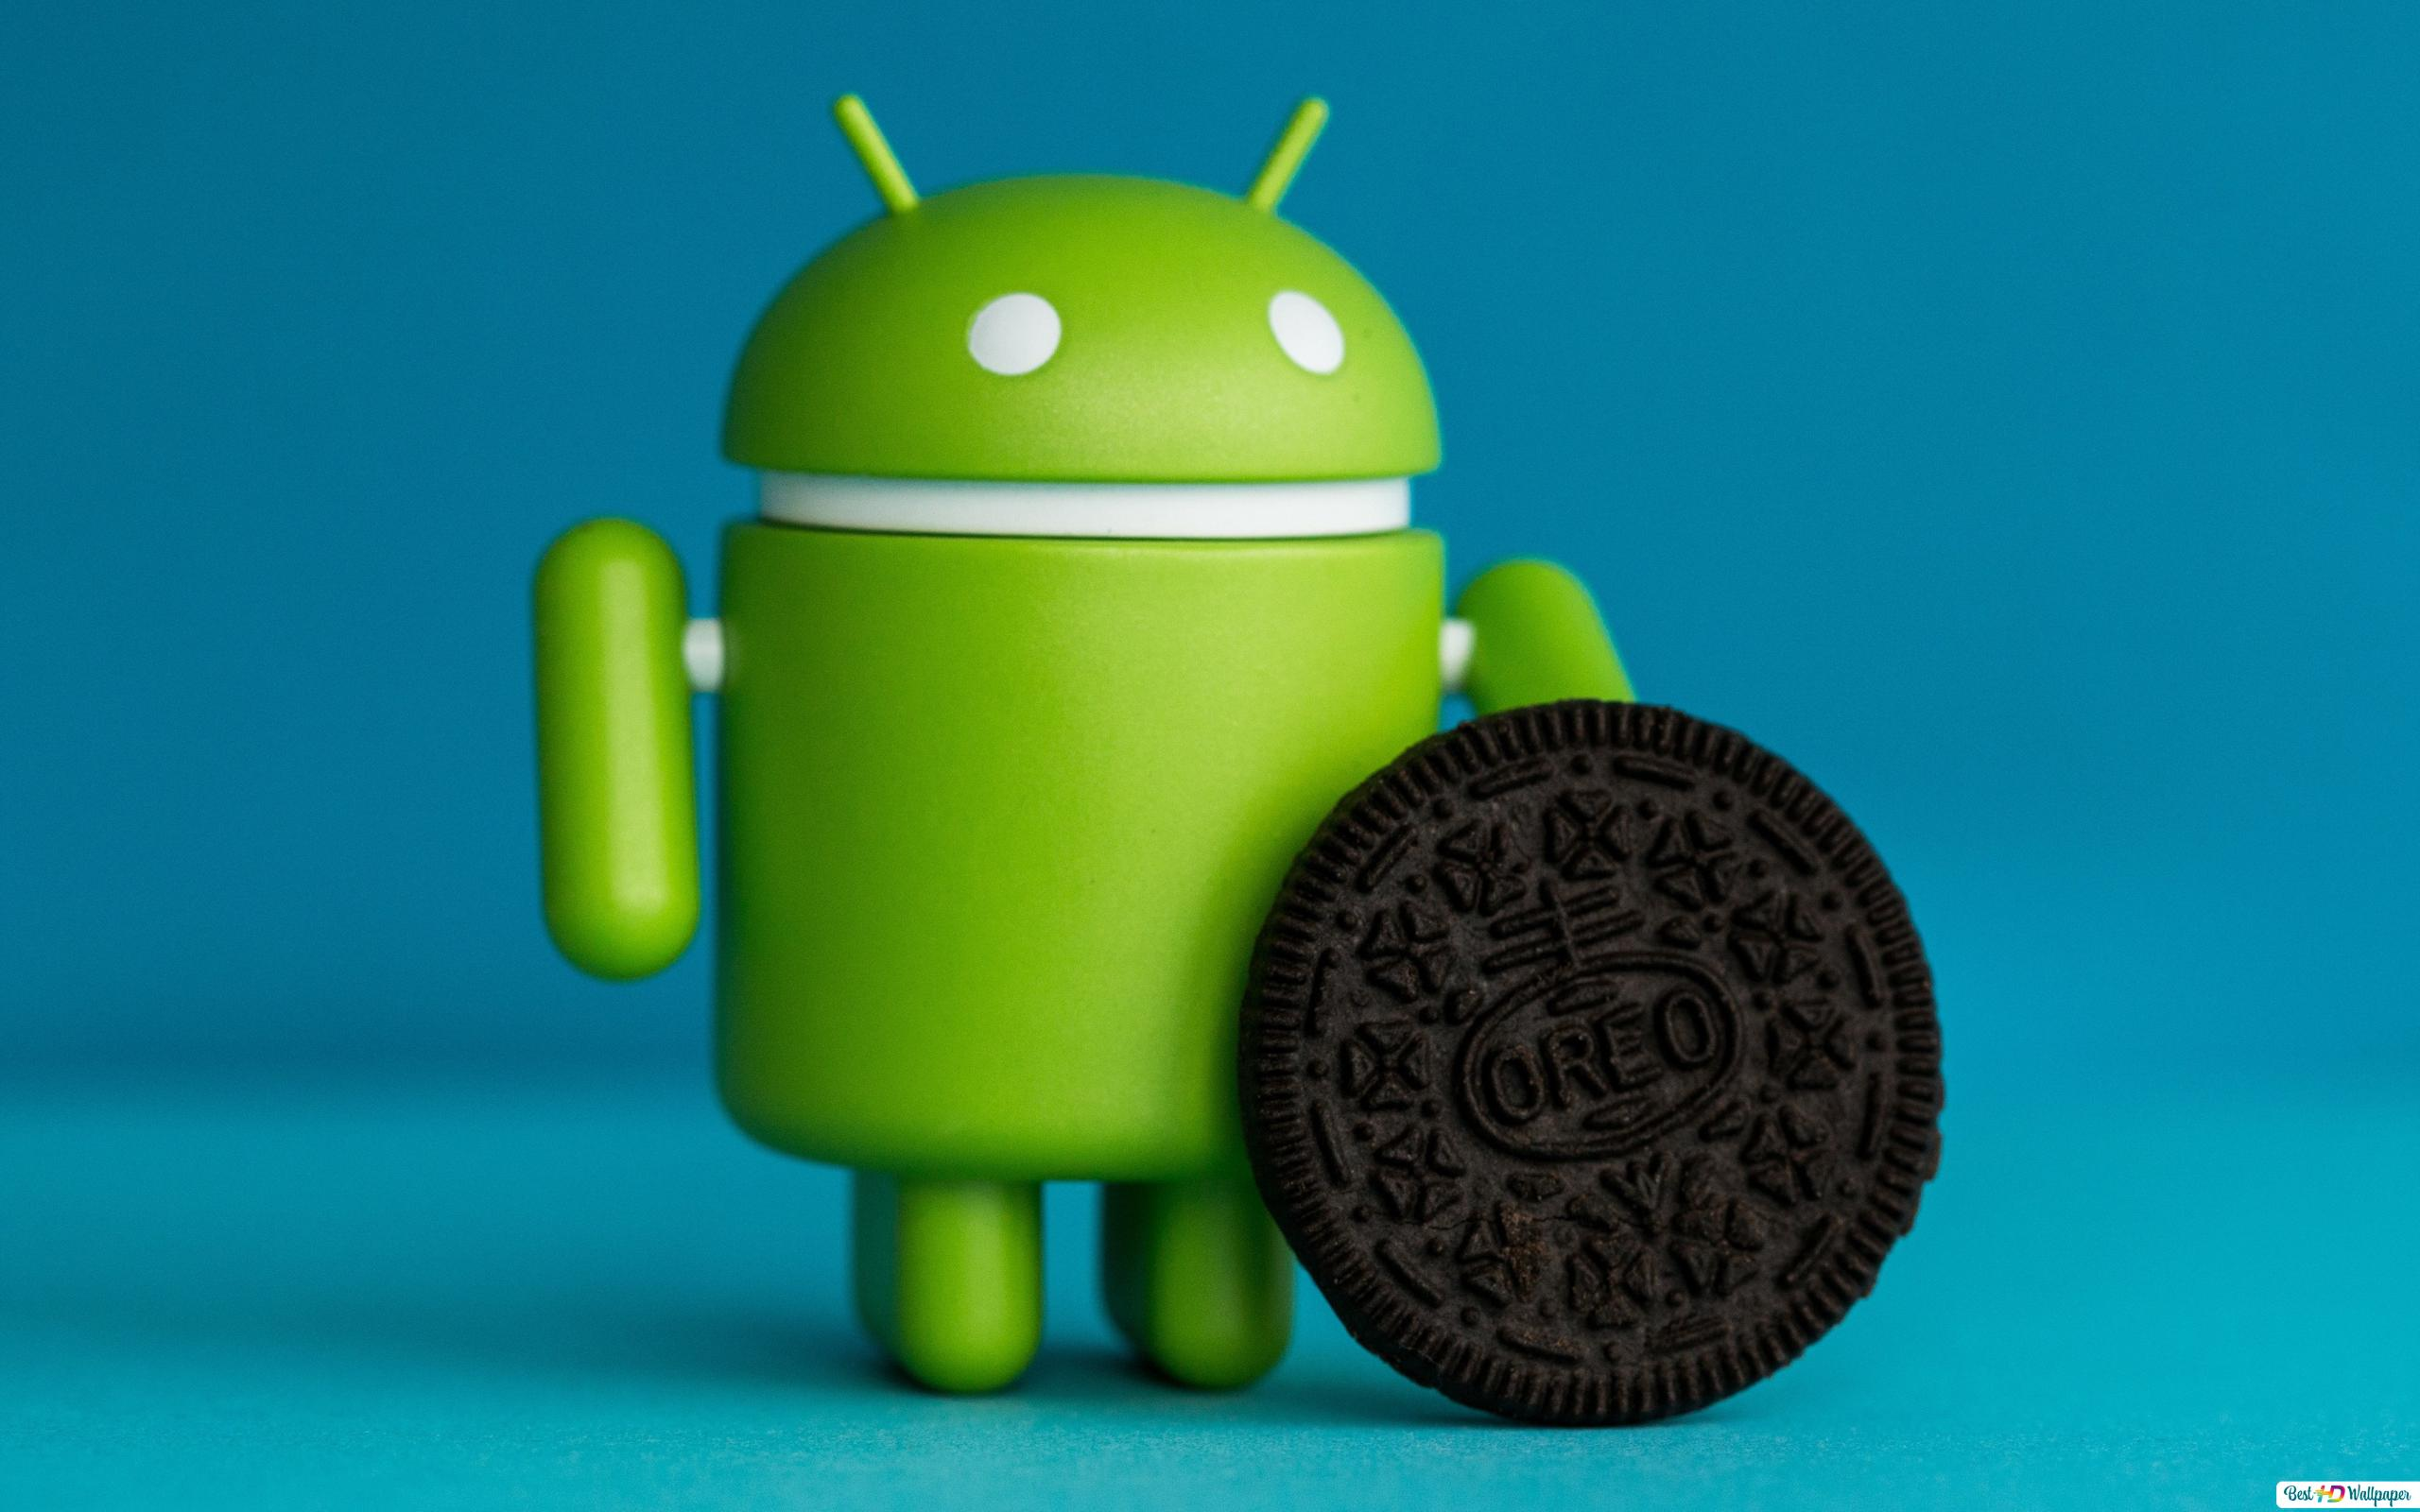 Android Oreo - version 8 software HD wallpaper download